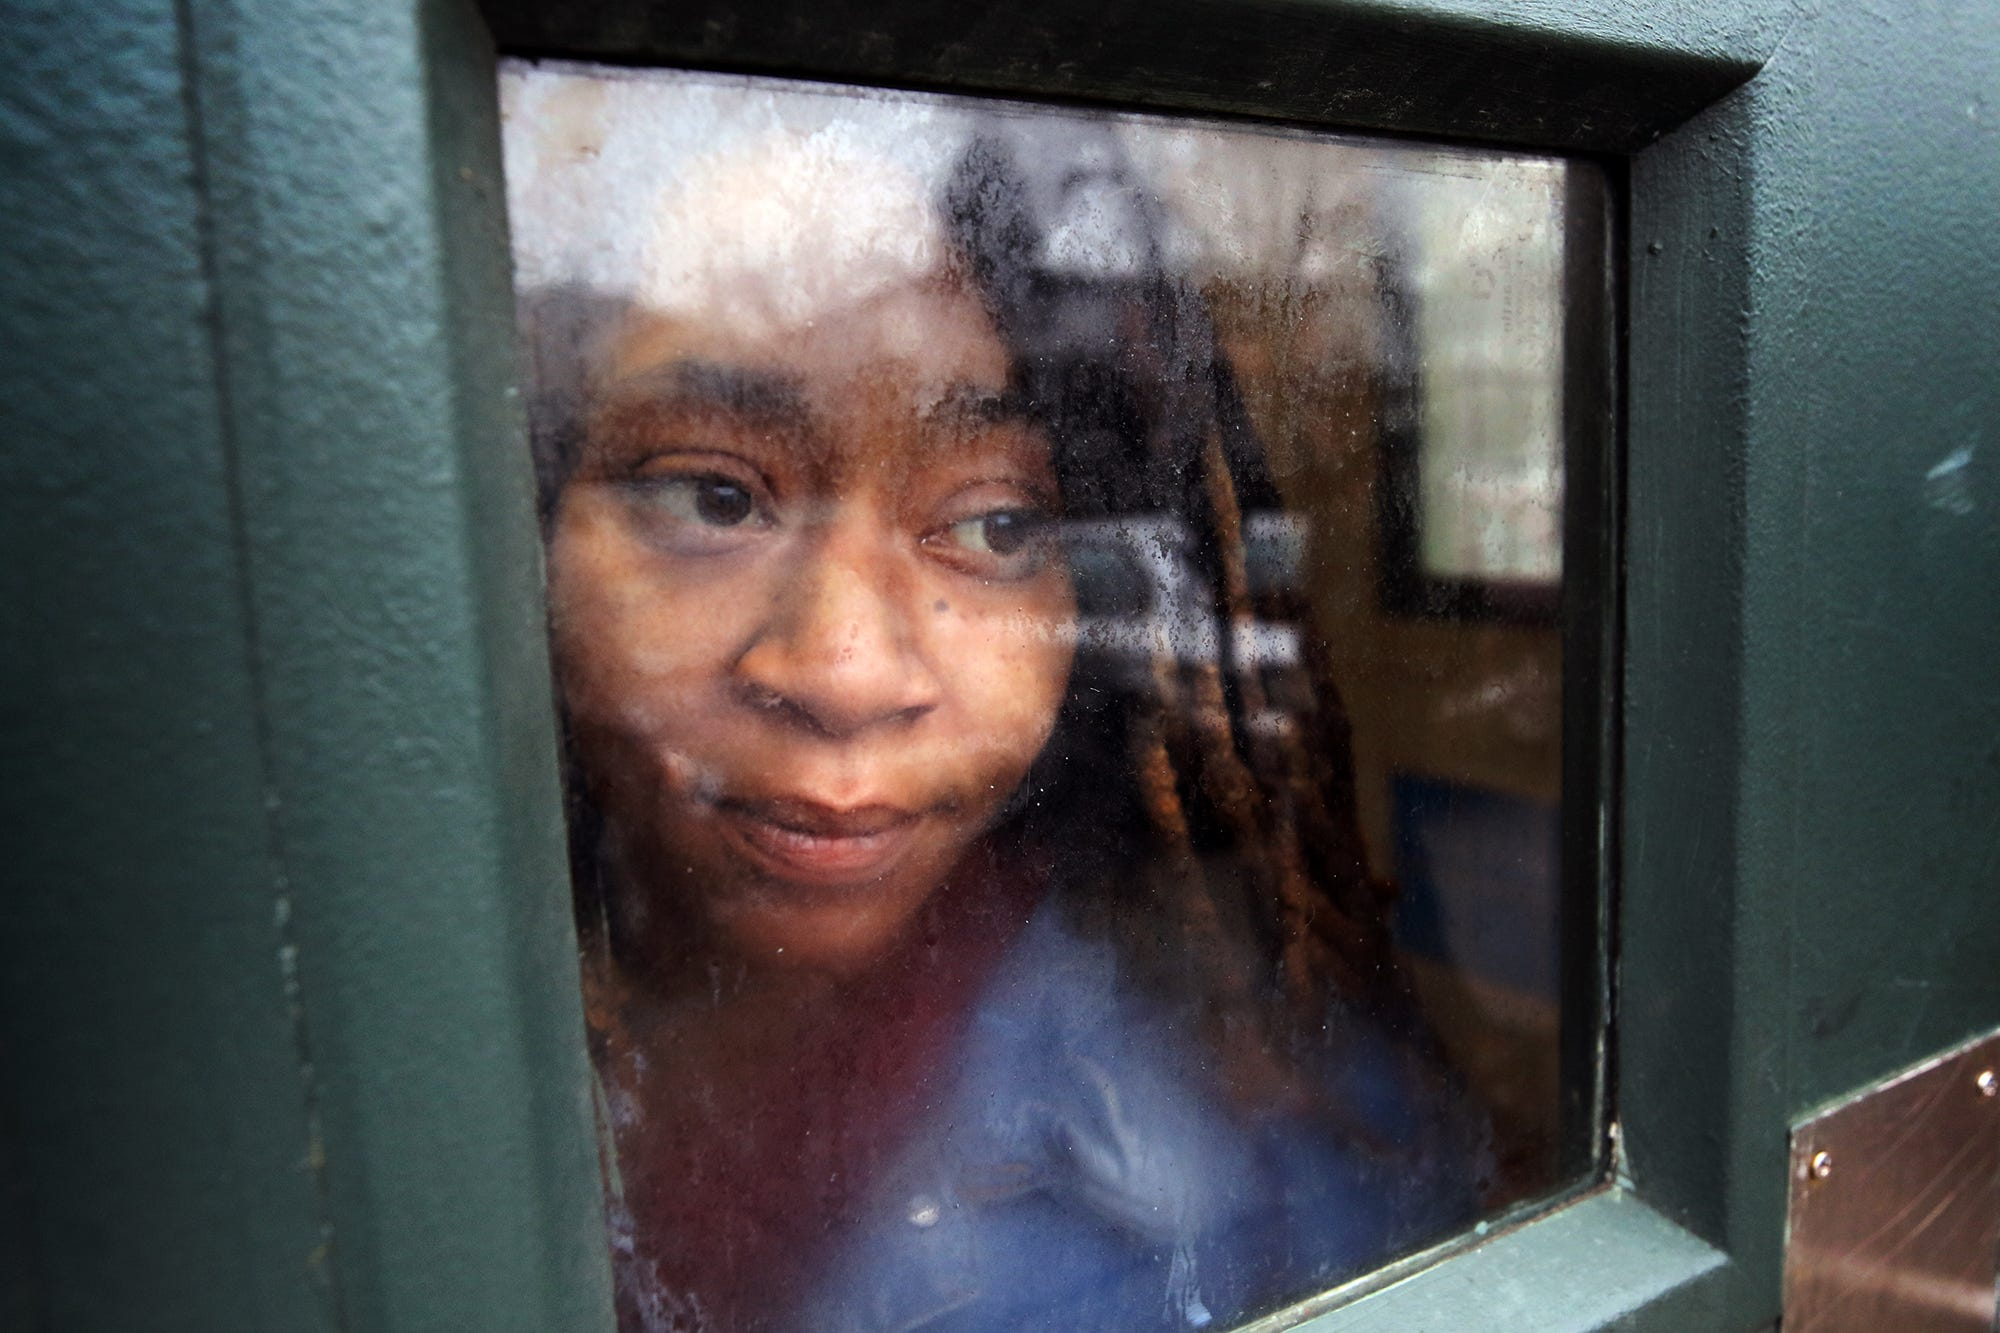 Tiffany Taylor stares out a window in her Jersey City apartment building during a recent interview.